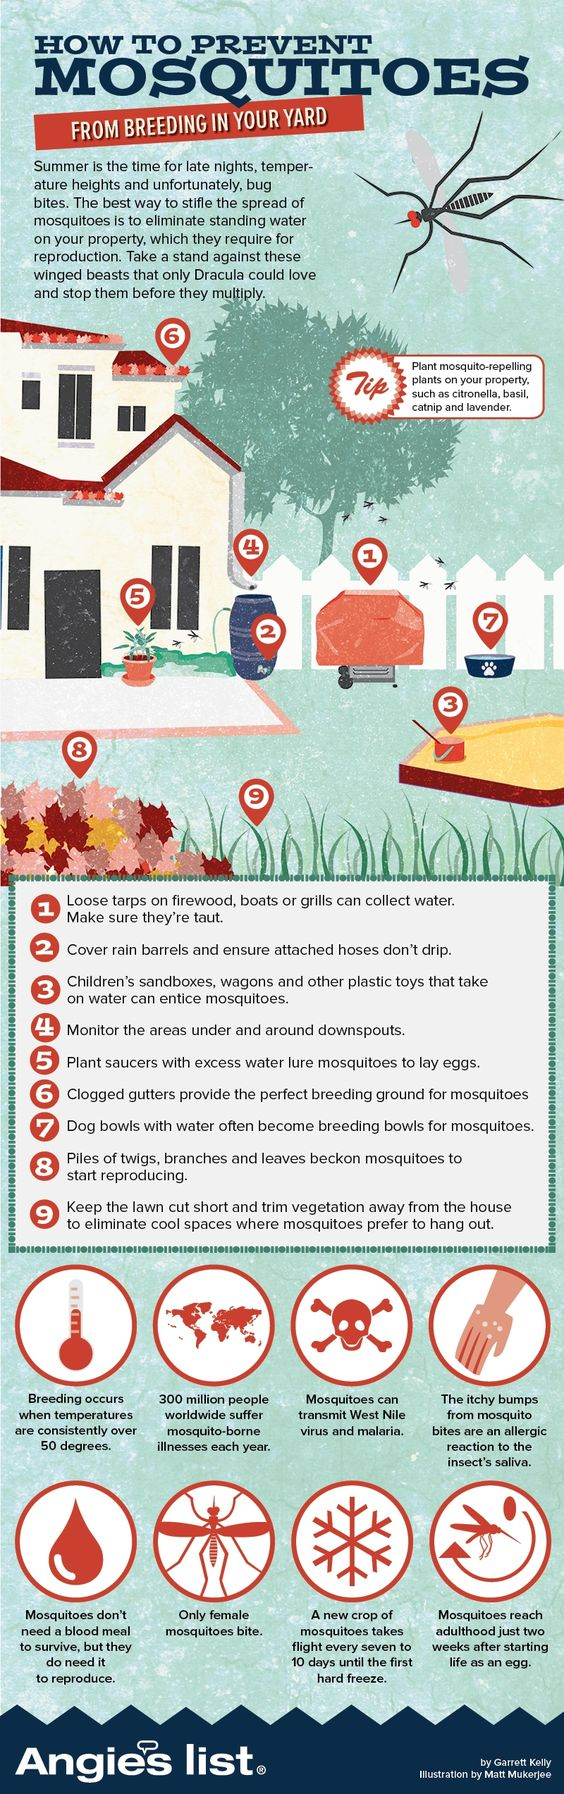 How to Prevent Mosquitoes [Infographic]